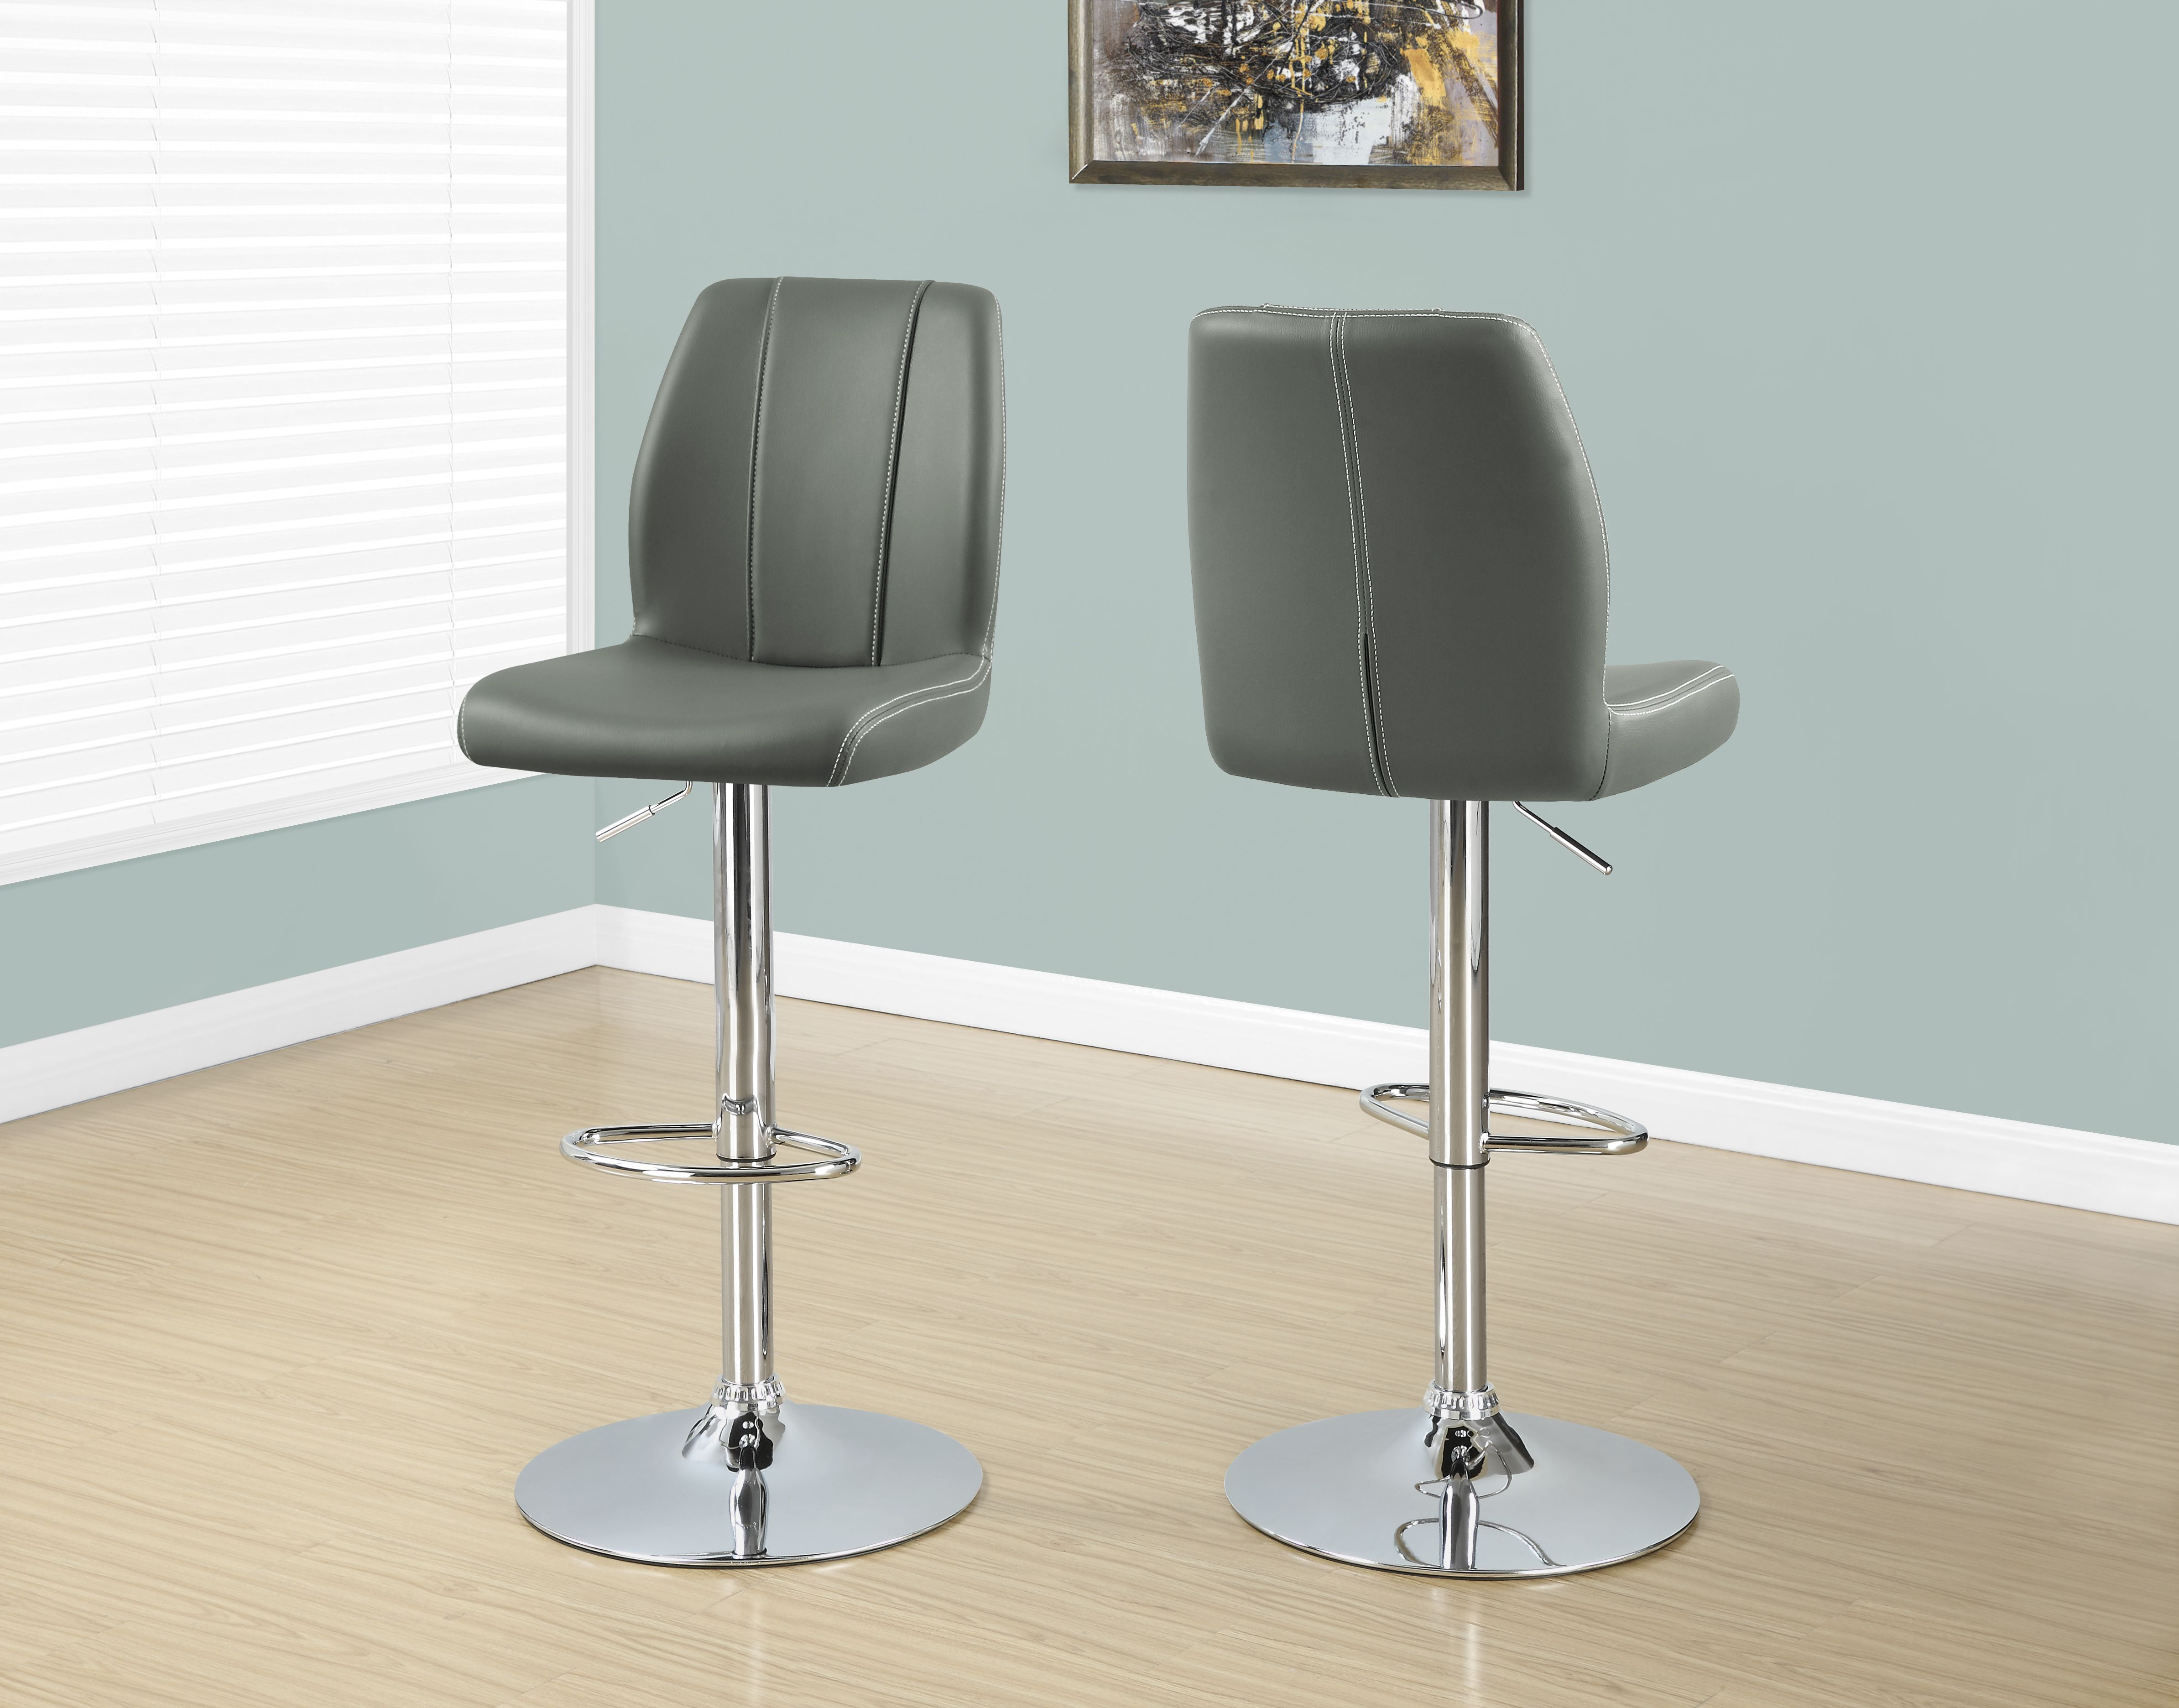 Hawthorne Collection Adjustable Swivel Bar Stool in White Set of 2